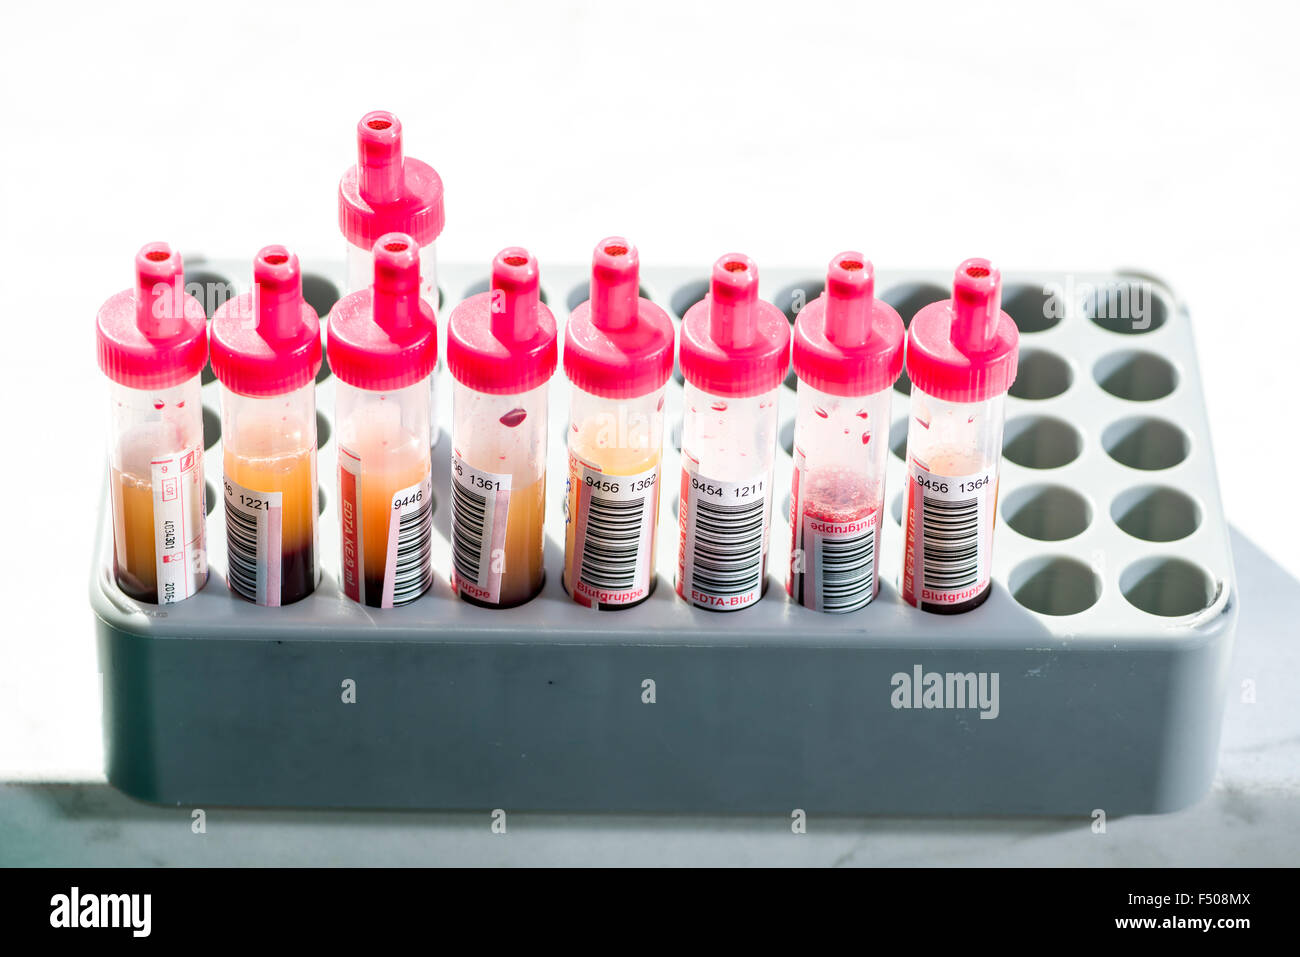 Many capillary tubes, filled with blood for diagnose the blood type, are sorted in a grey rack - Stock Image